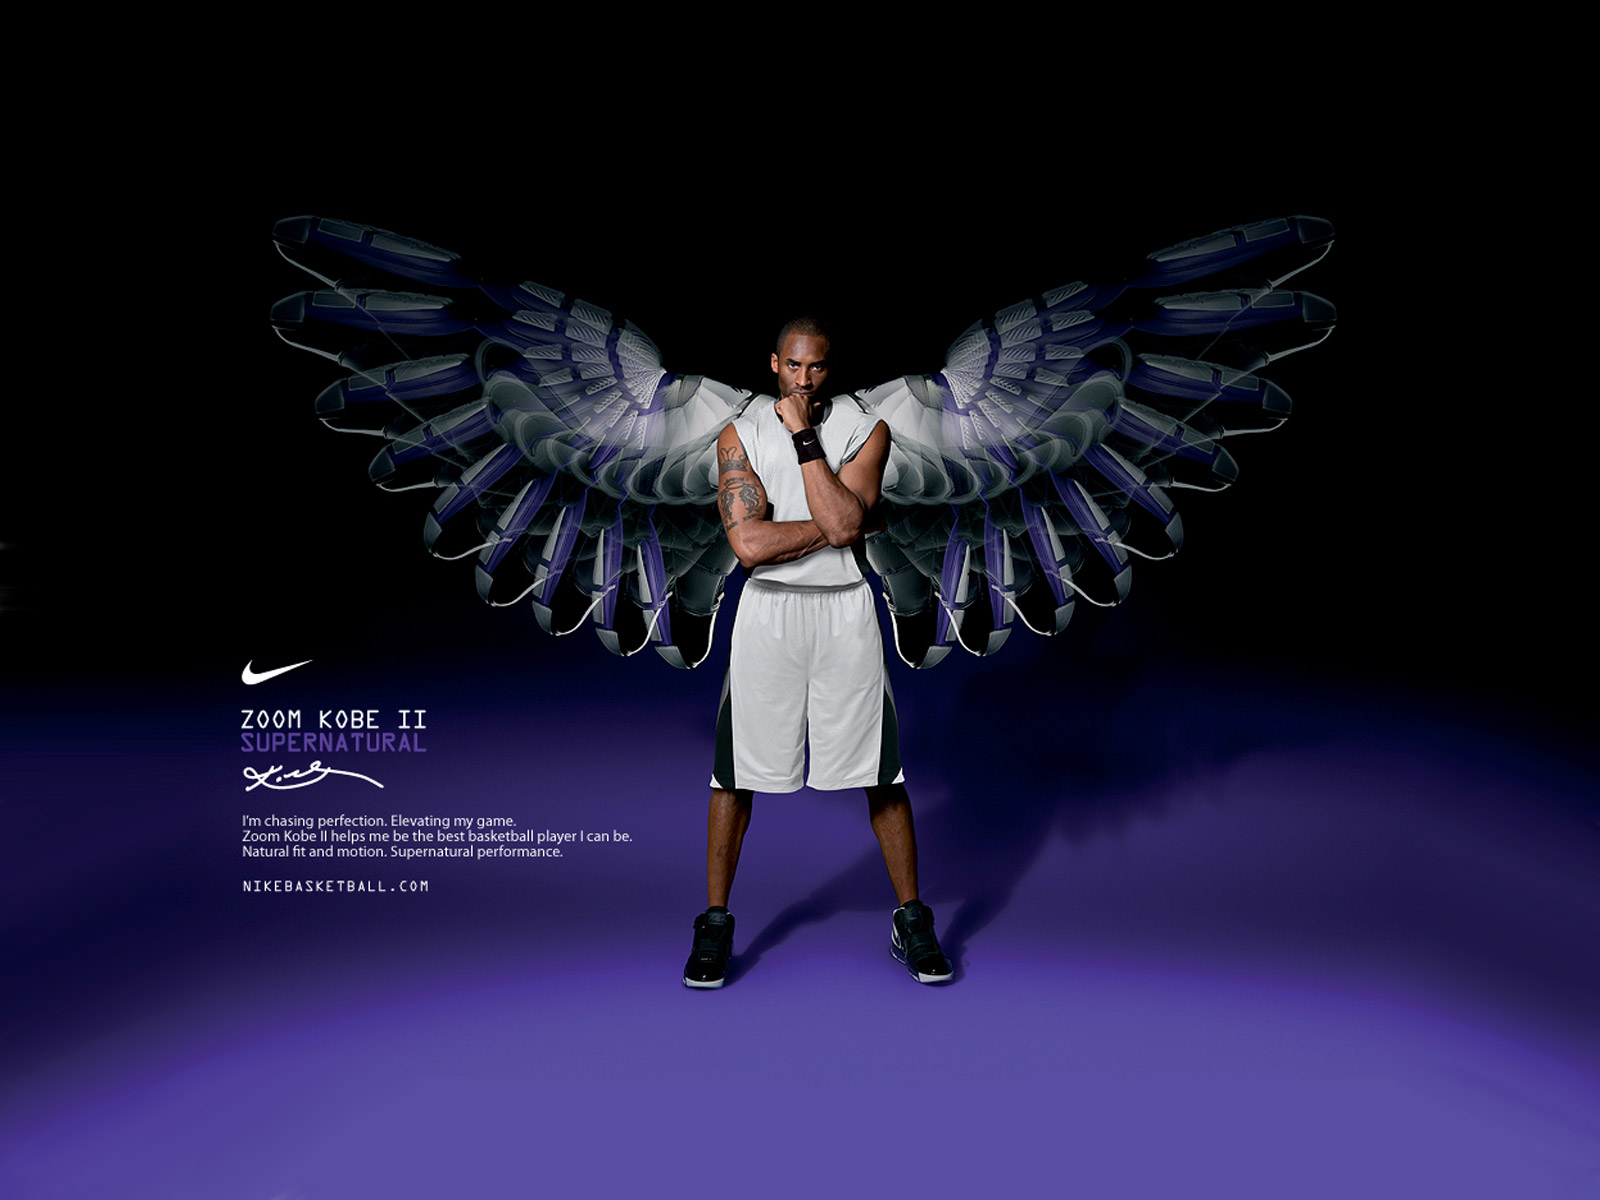 Kobe Bryant Zoom Supernatural - Kobe Bryant Zoom Supernatural